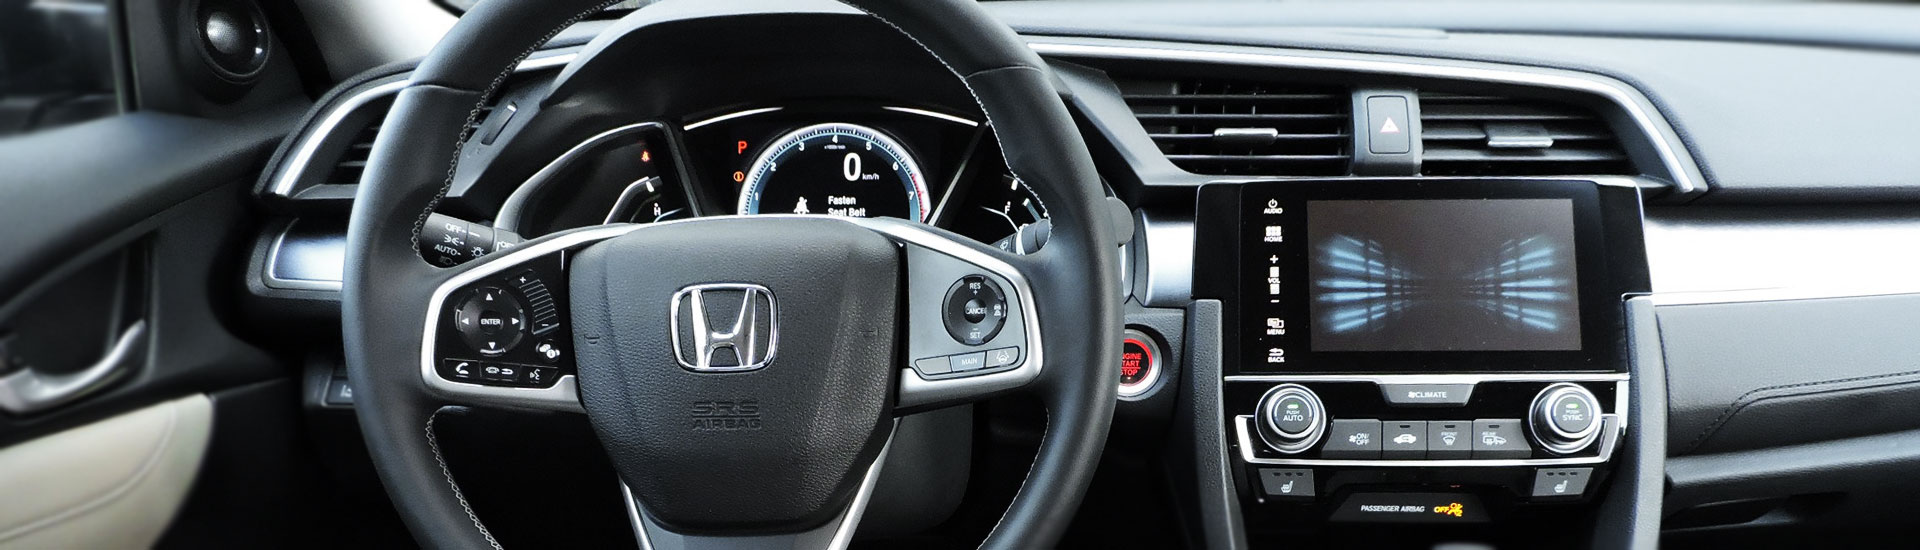 2014 Honda Crosstour Custom Dash Kits